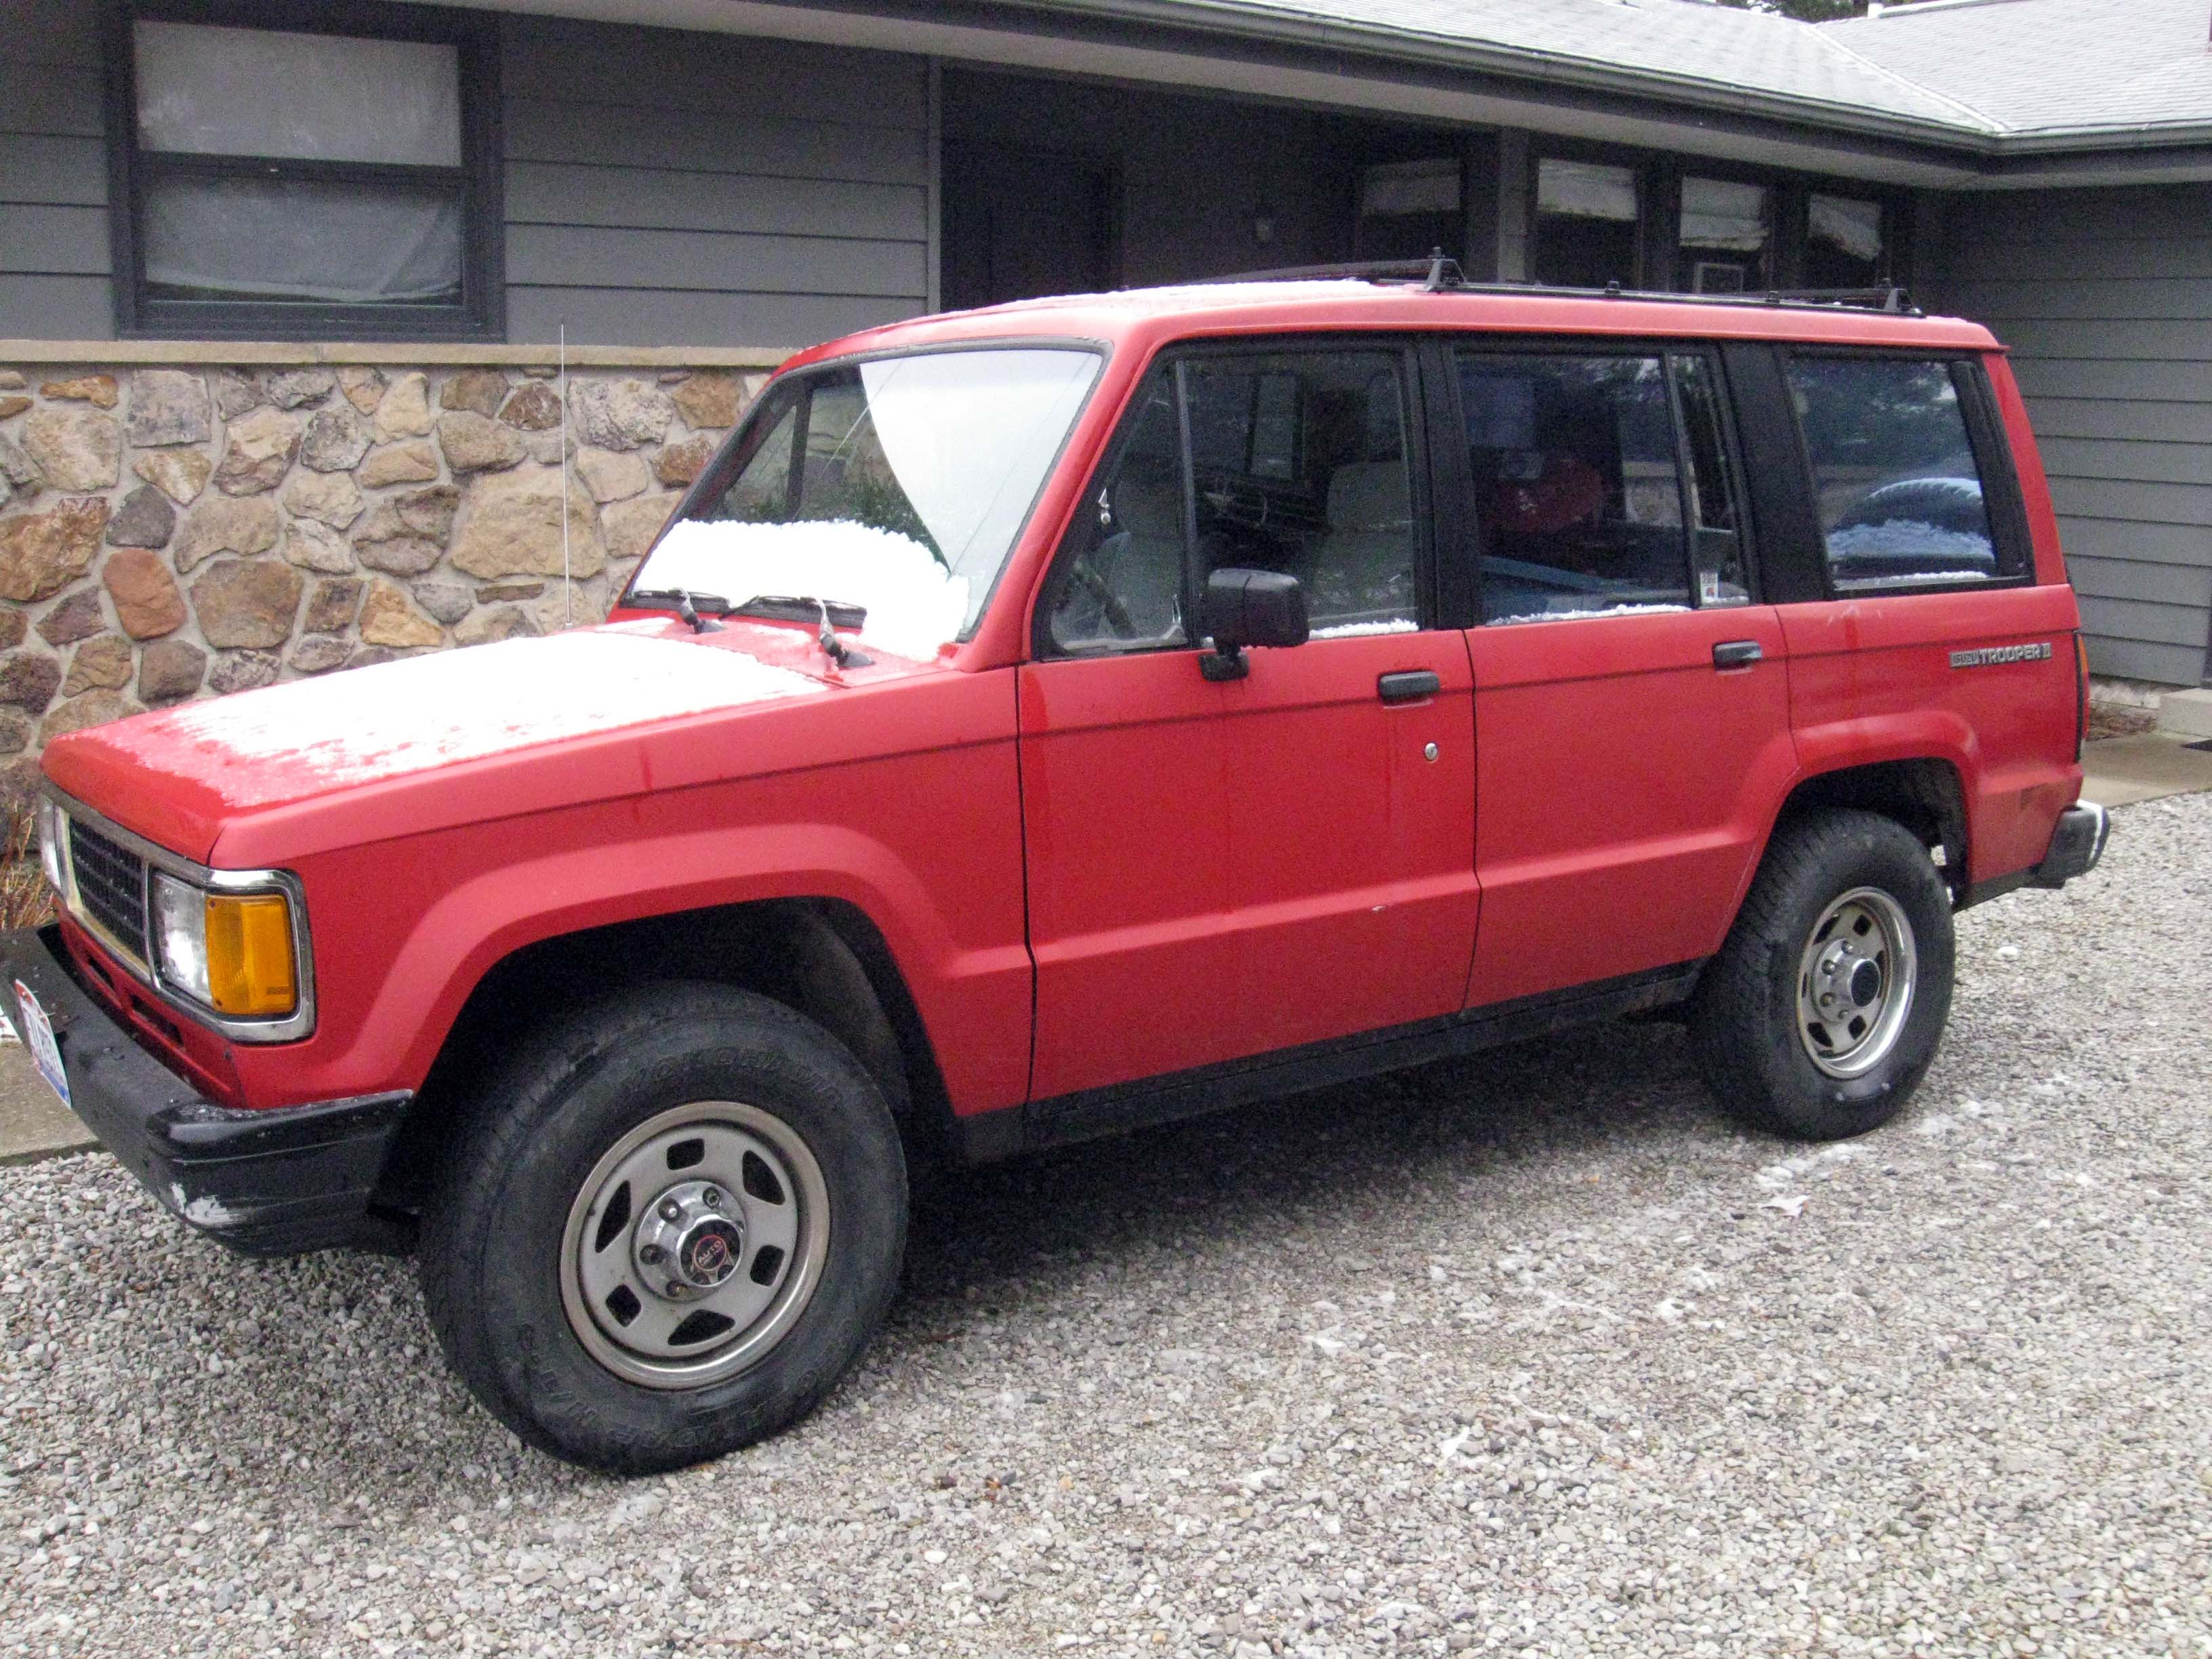 1988 Isuzu Trooper II - Red -Picture Page